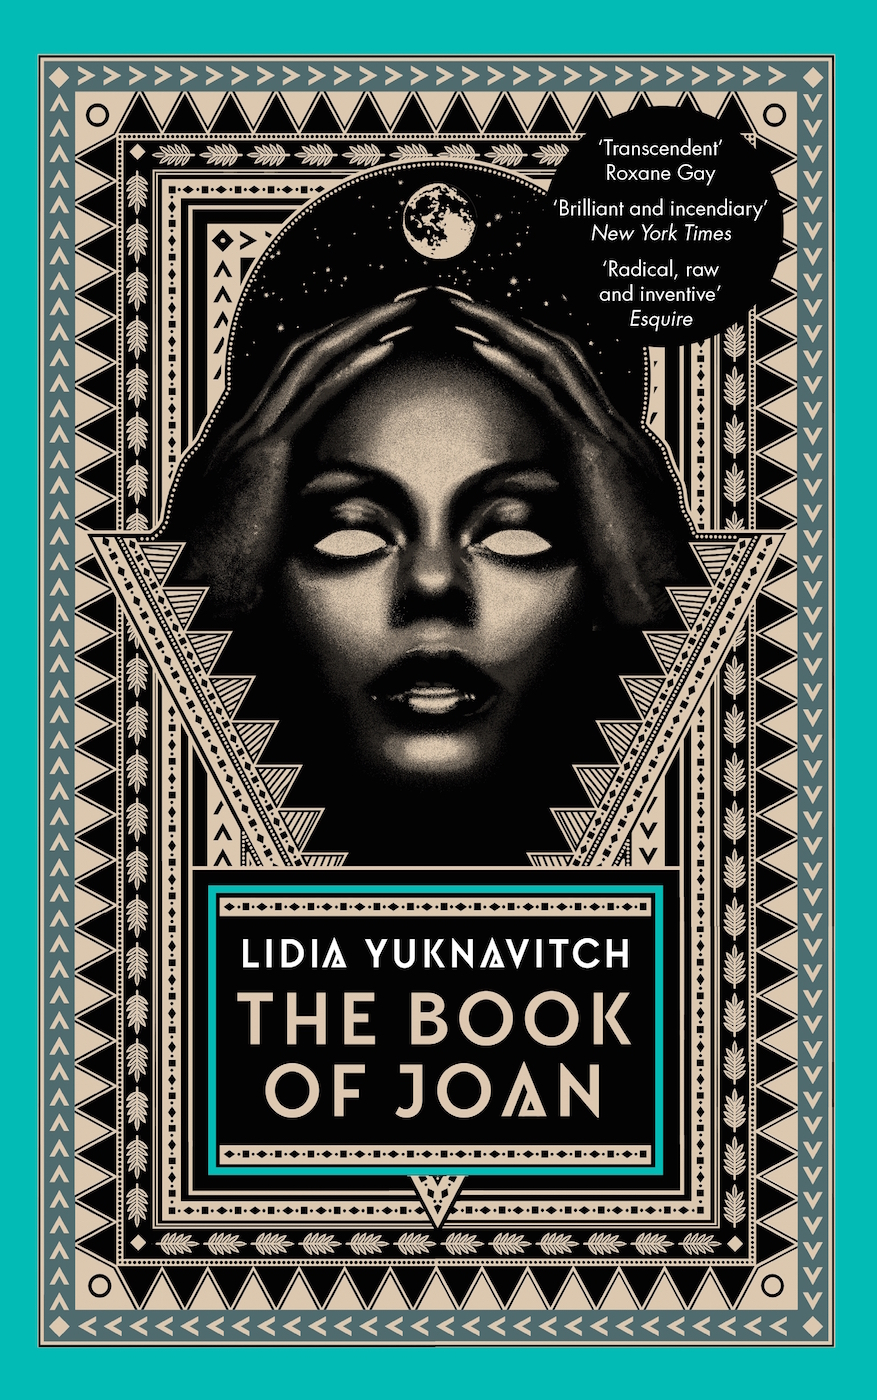 Image of Lidia Yuknavitch – The Book of Joan